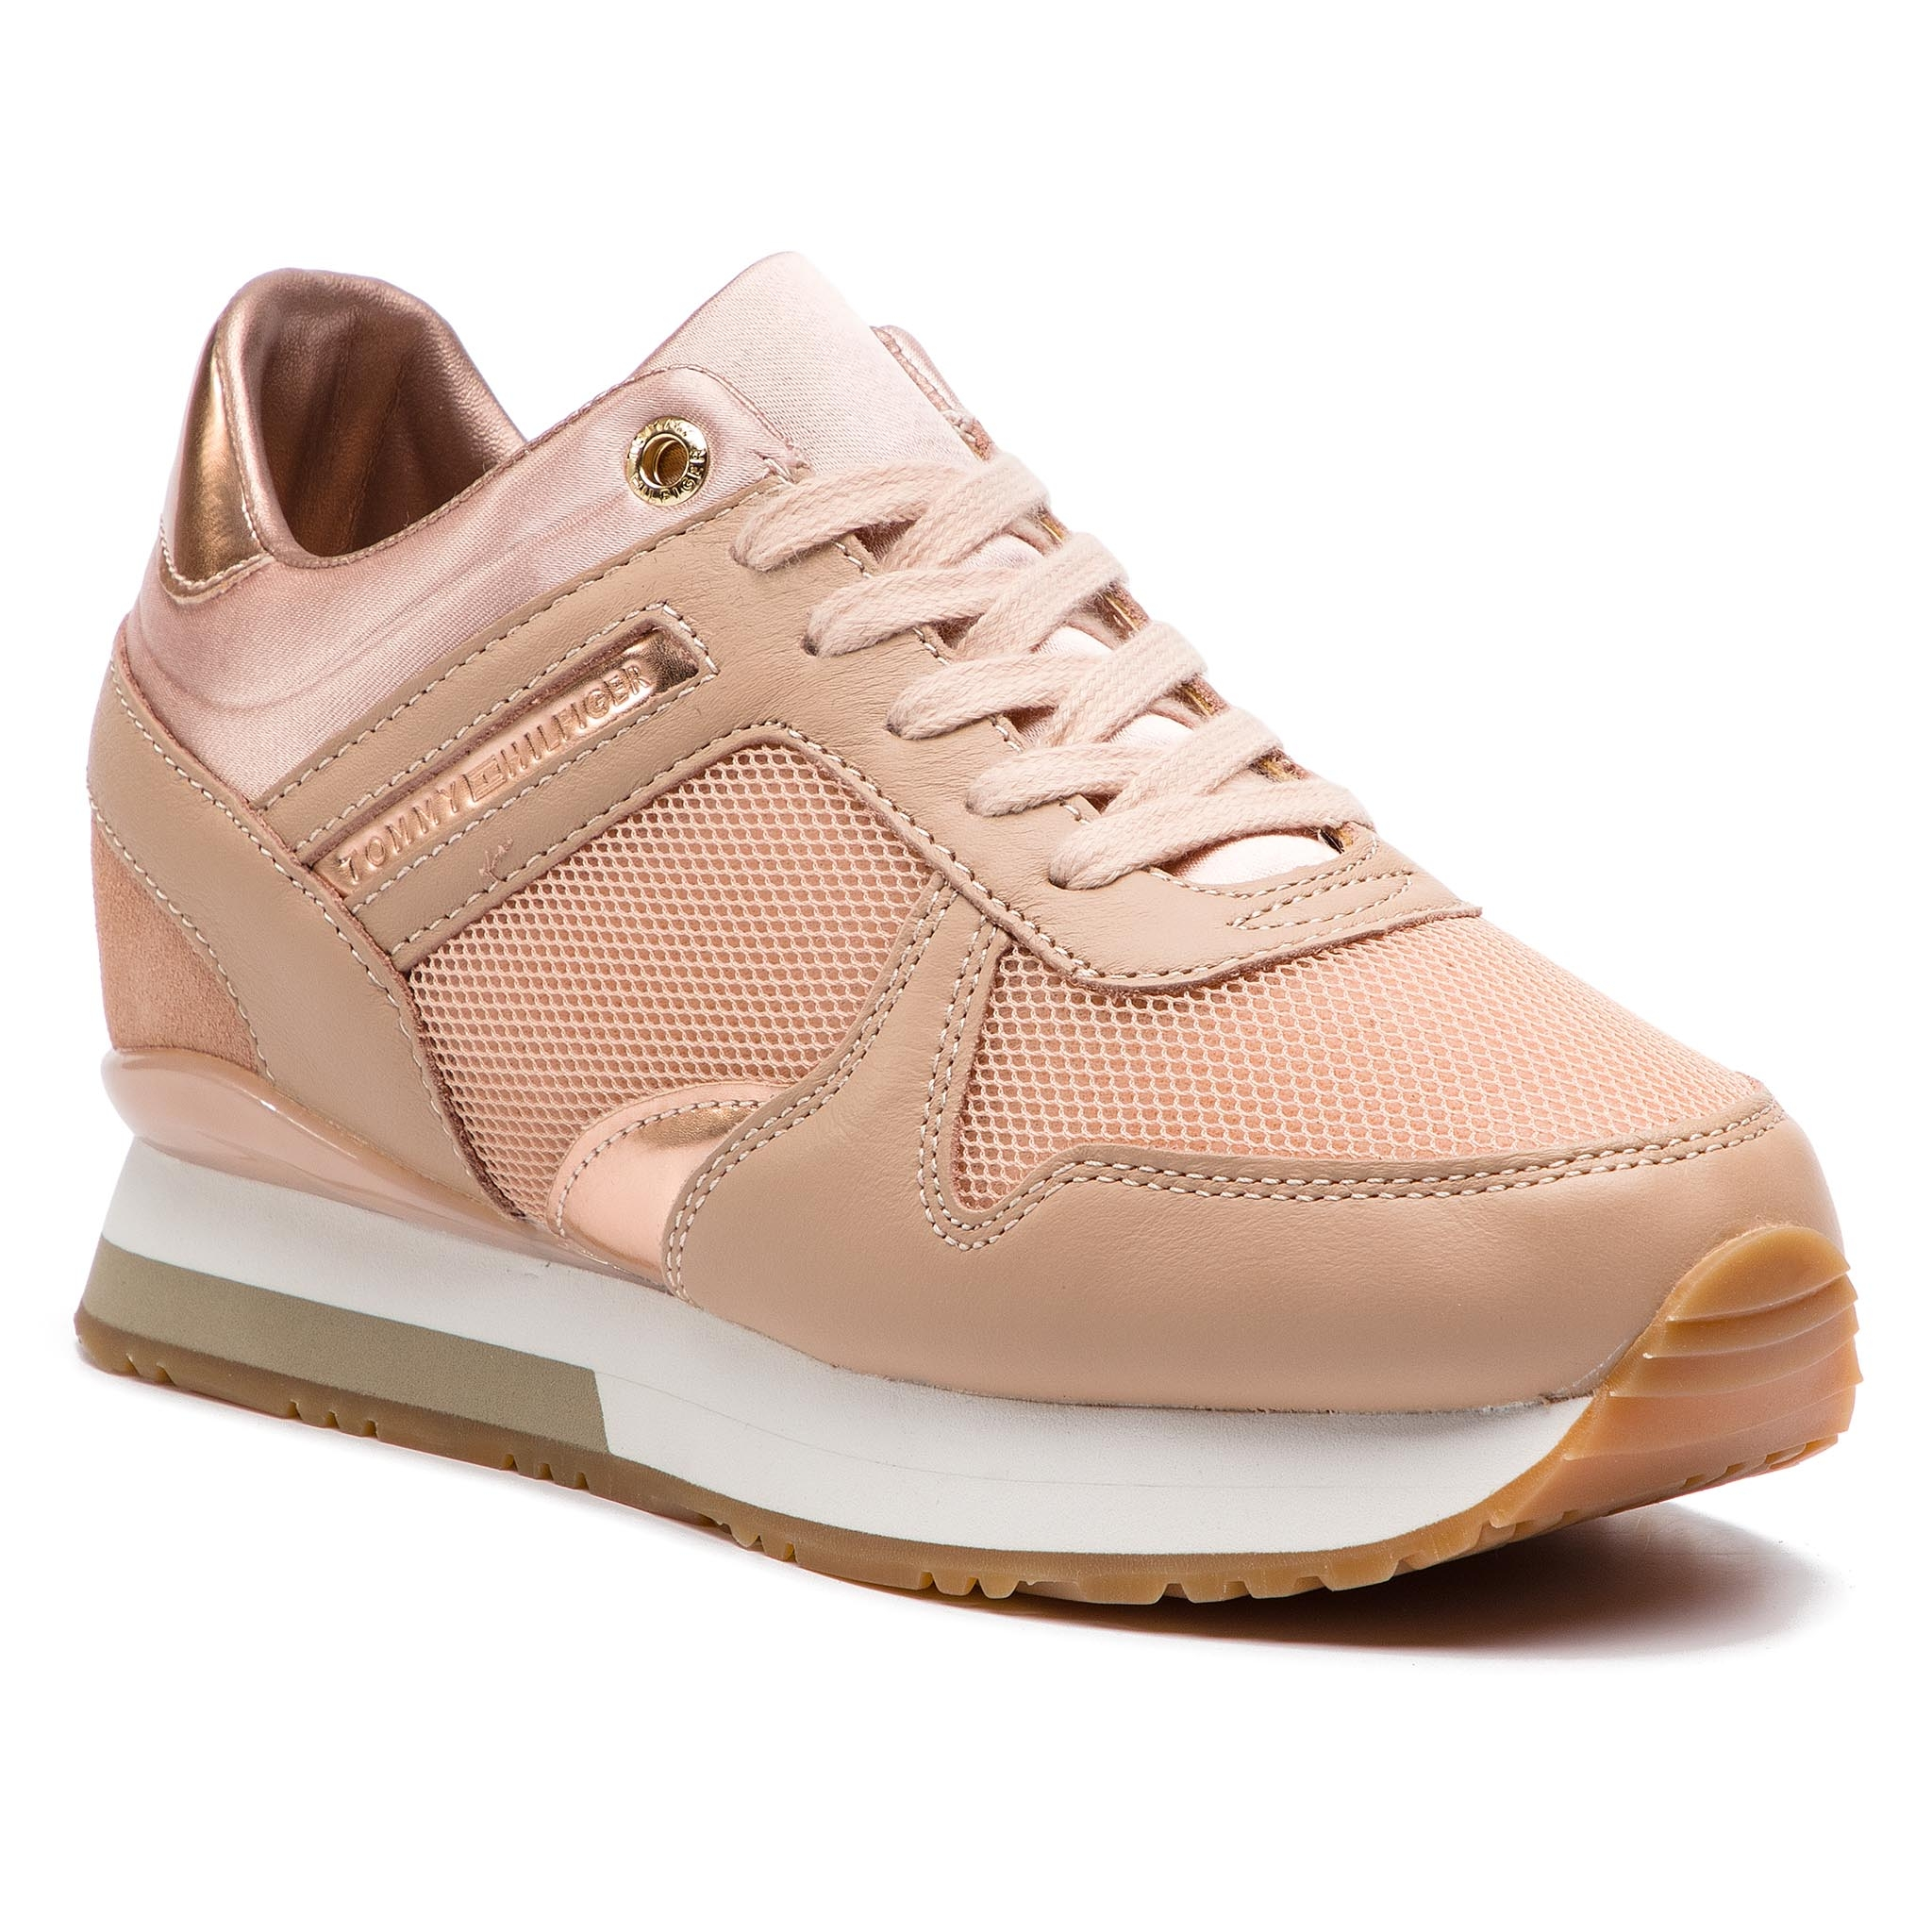 Sneakers TOMMY HILFIGER - Glitter Textile Wedge Sneaker FW0FW03893 Mahogany  Rose 656 ... be59cfcbb0